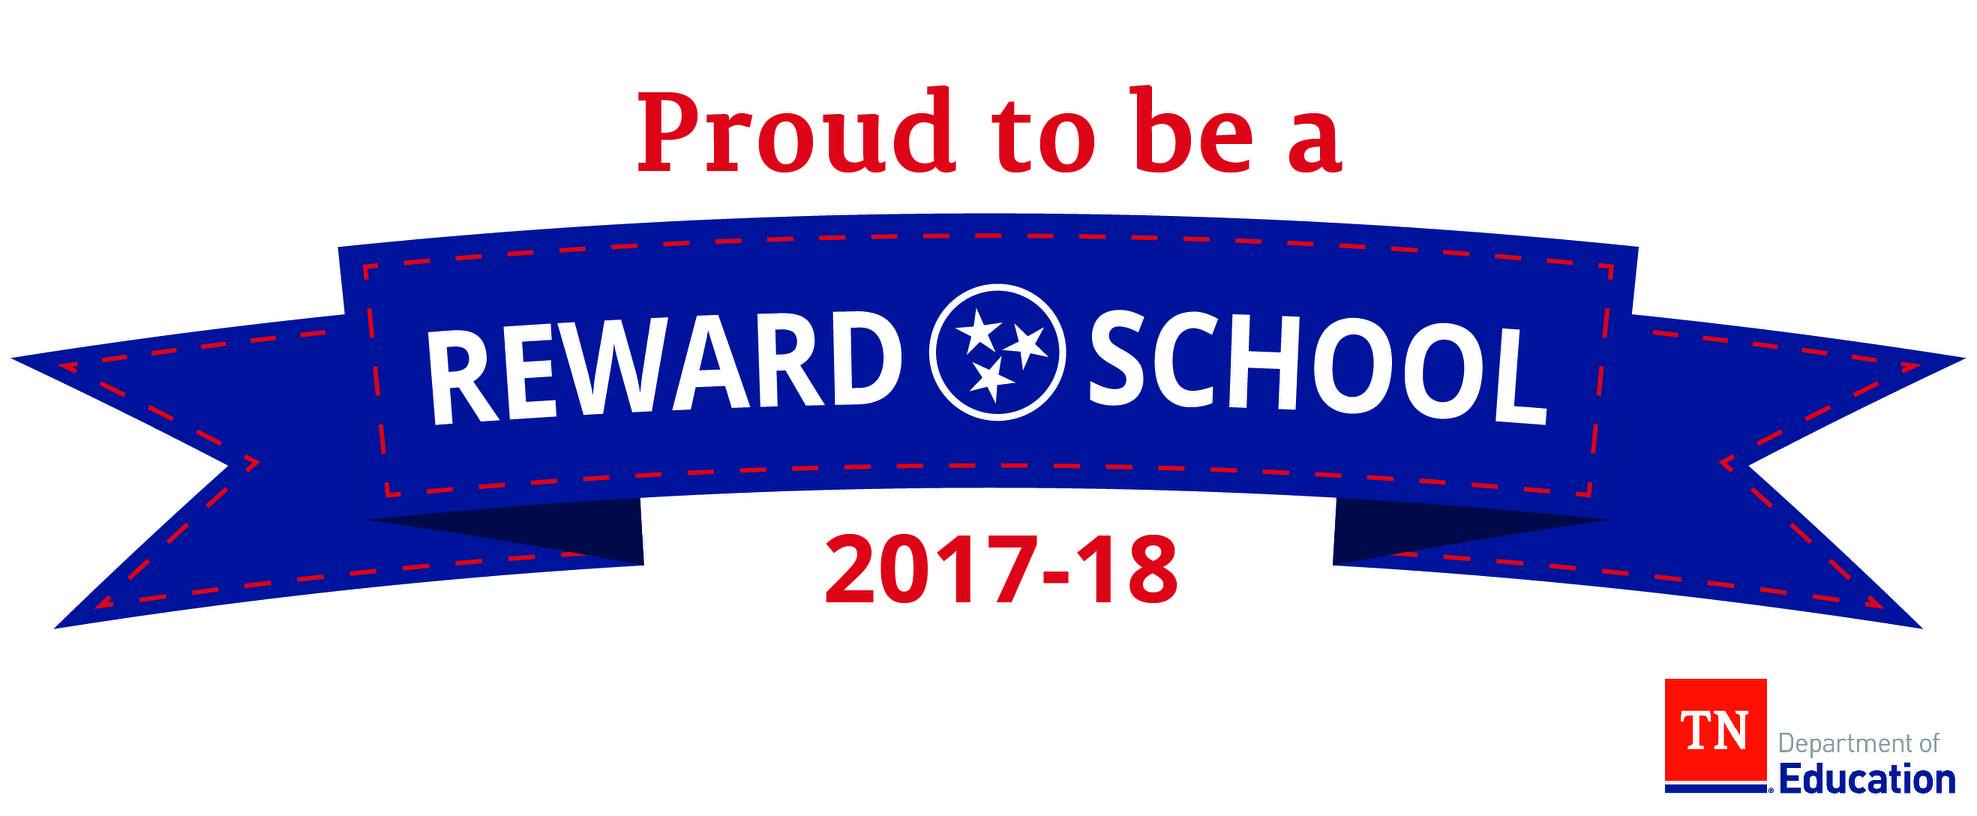 Proud to be a reward school 2017 - 2018